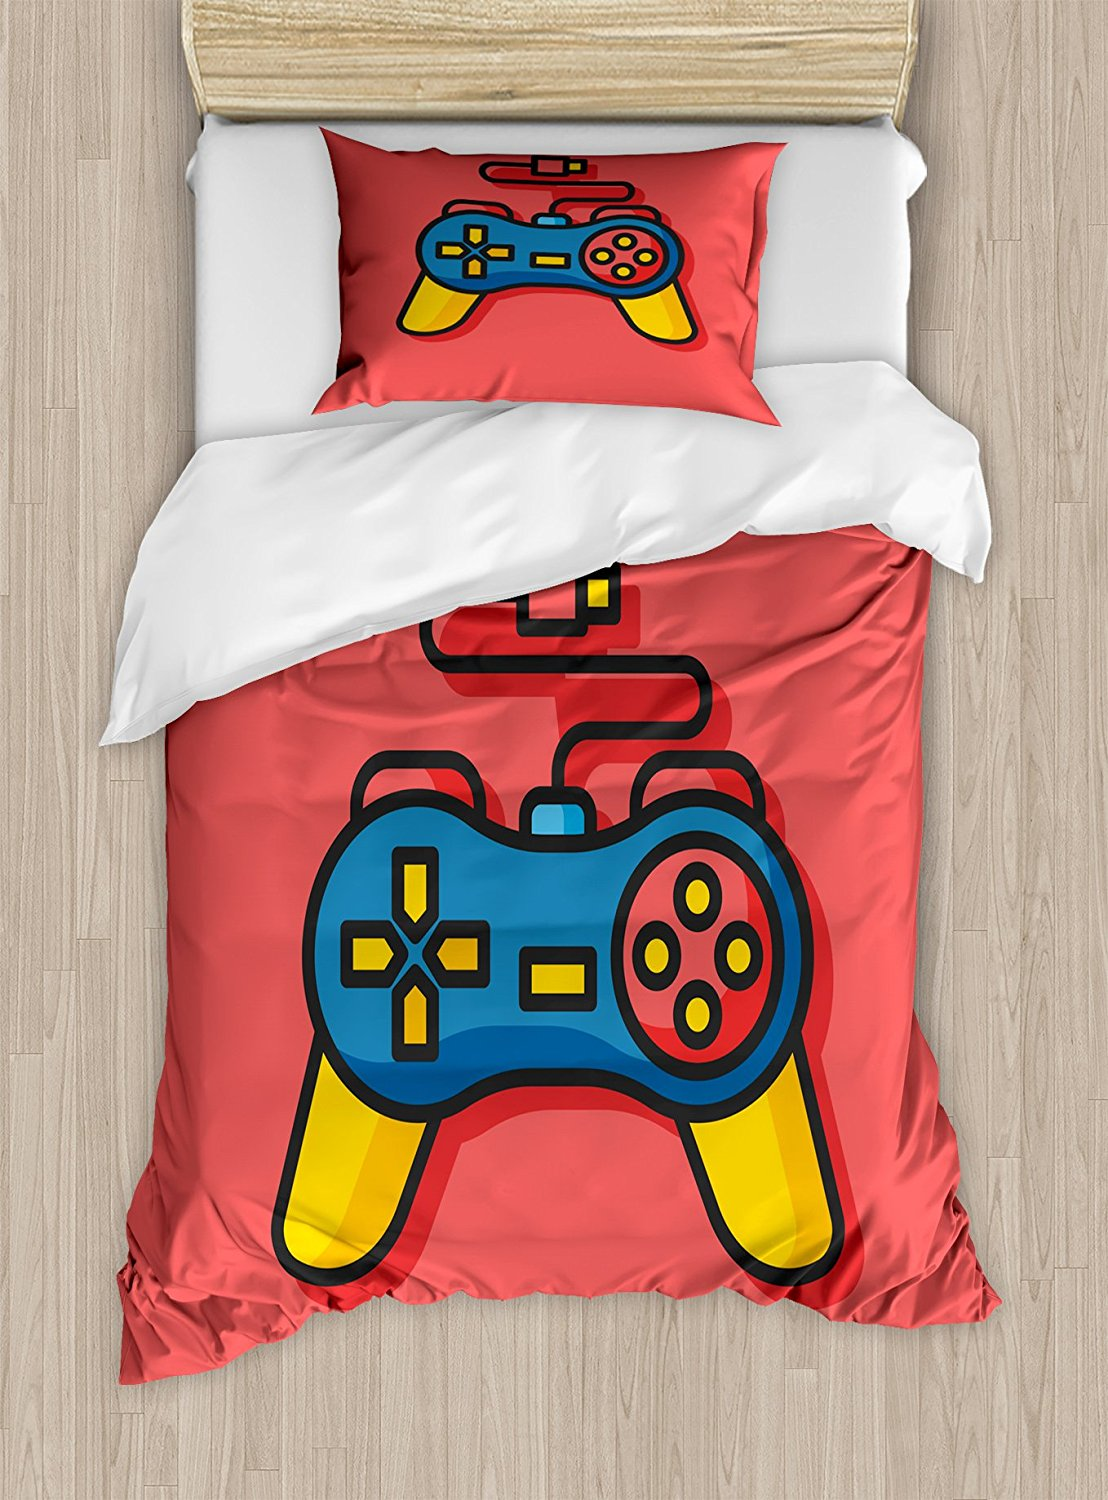 Gamer Duvet Cover Set Old School Colorful Videogame Controller with Minimalist Style D-Pad and Triggers 4 Piece Bedding Set